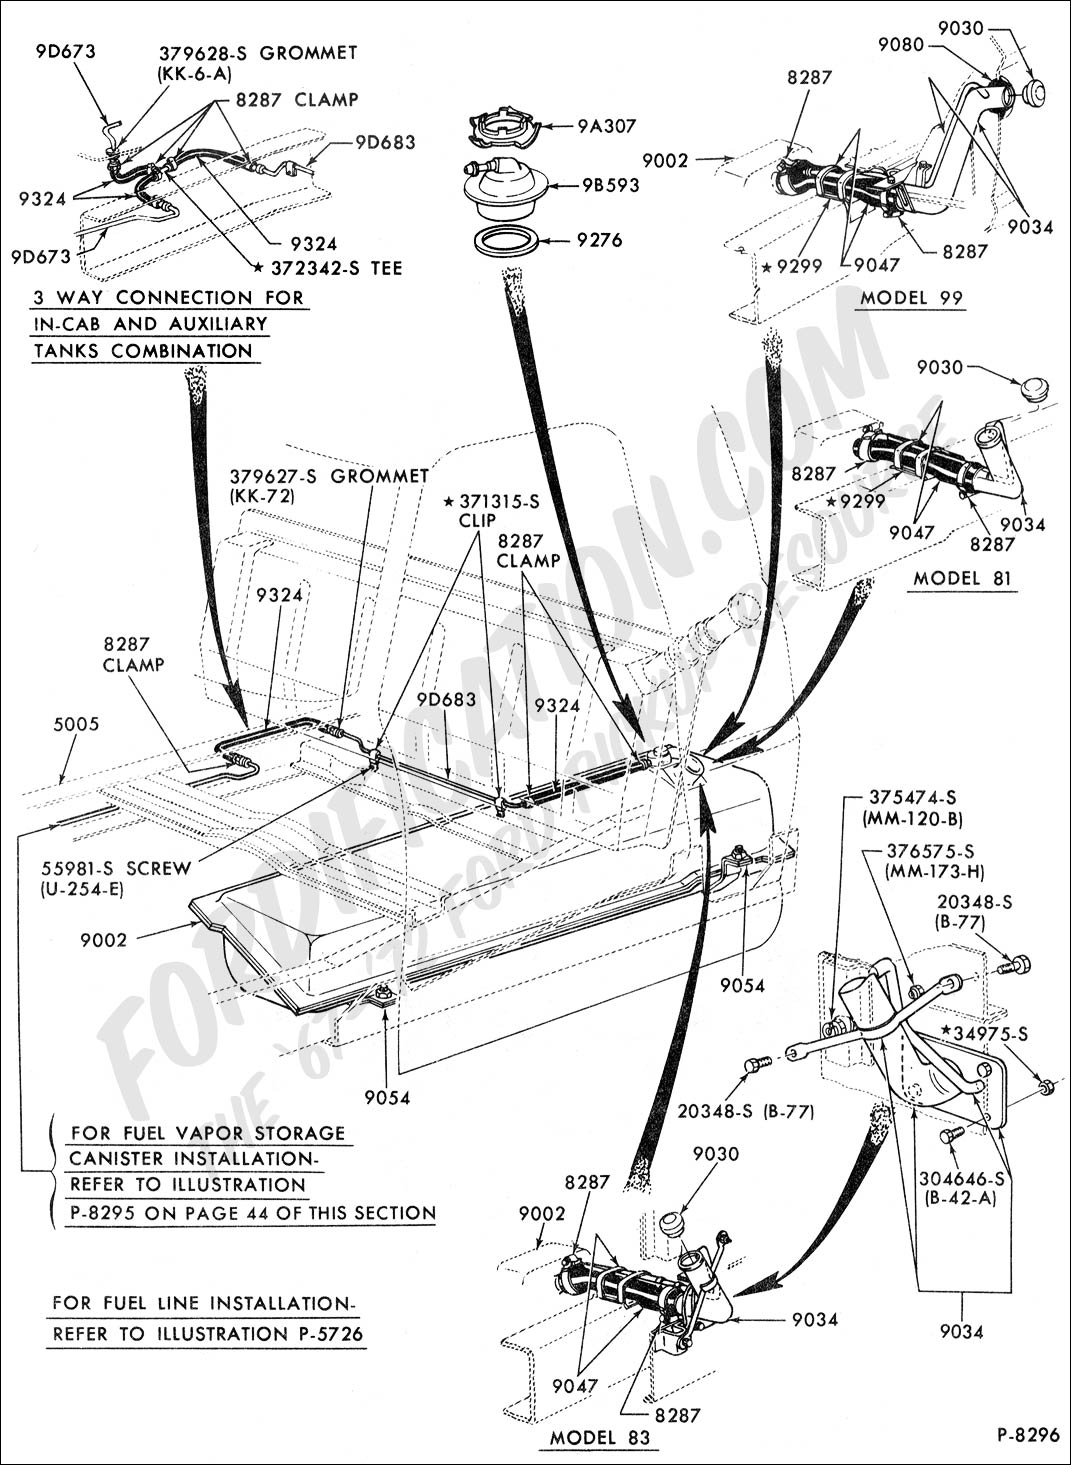 67-72 F-100 Fuel System Diagram